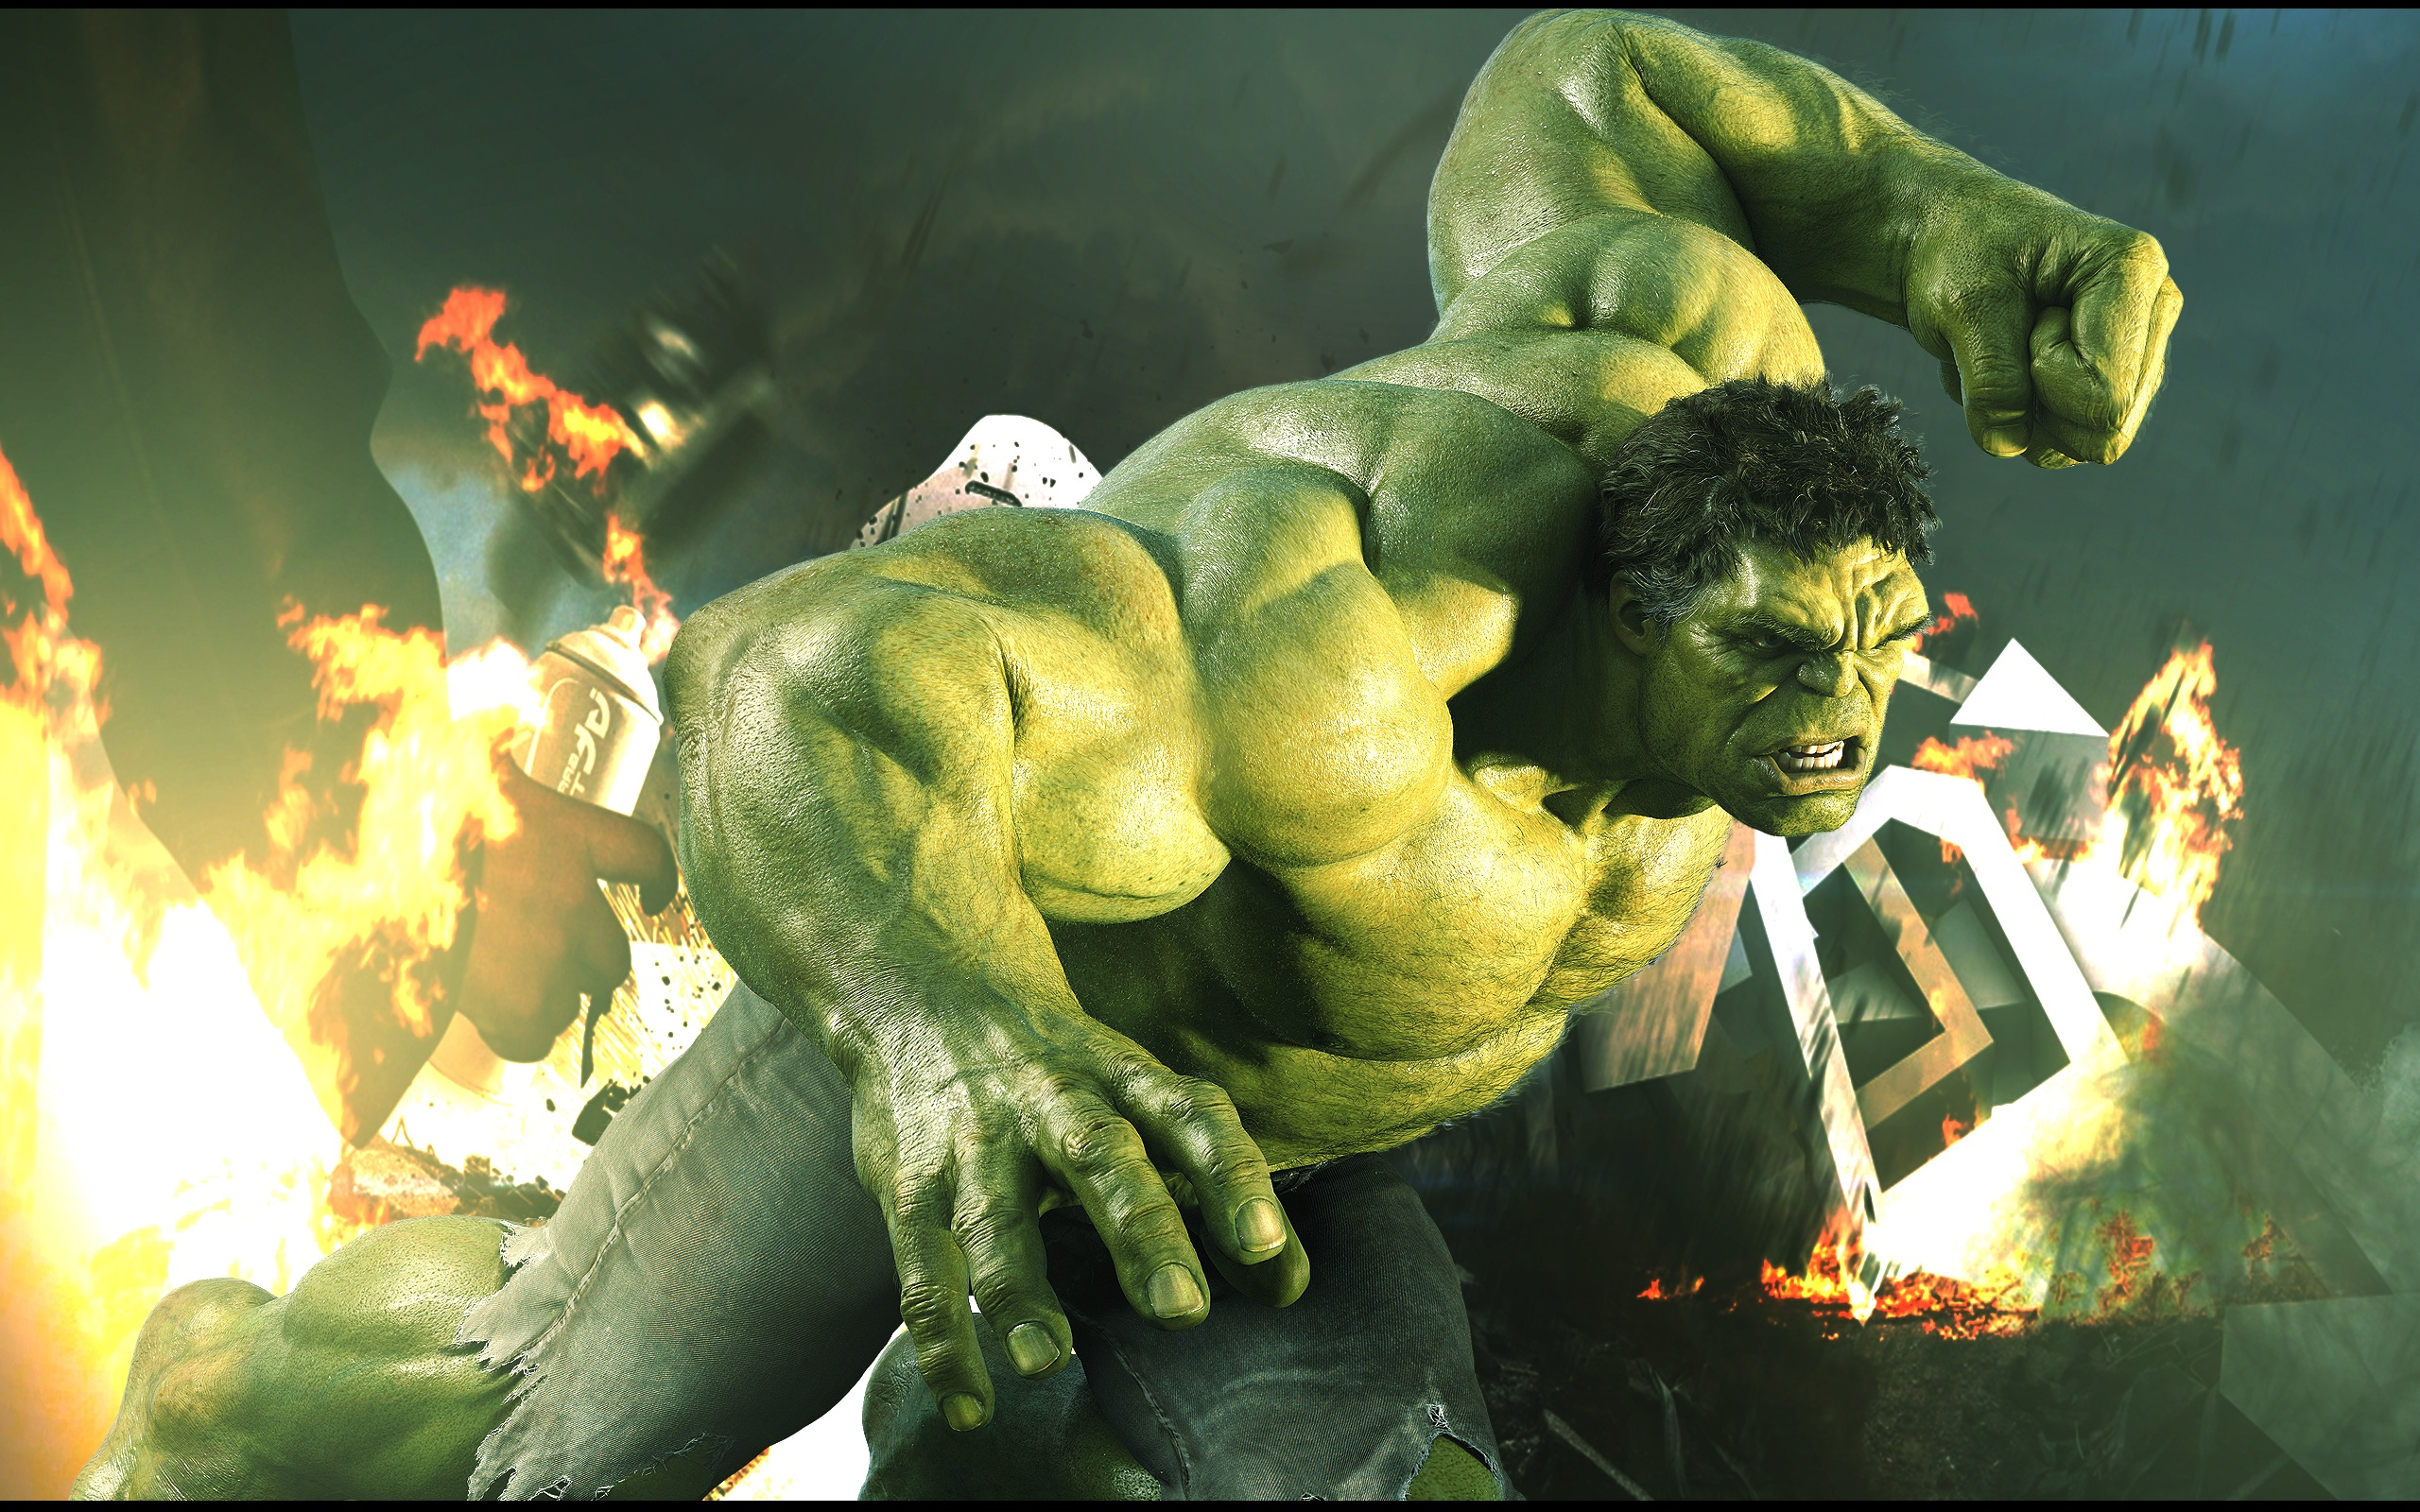 Hulk hd wallpapers for desktop download - Hulk hd images free download ...